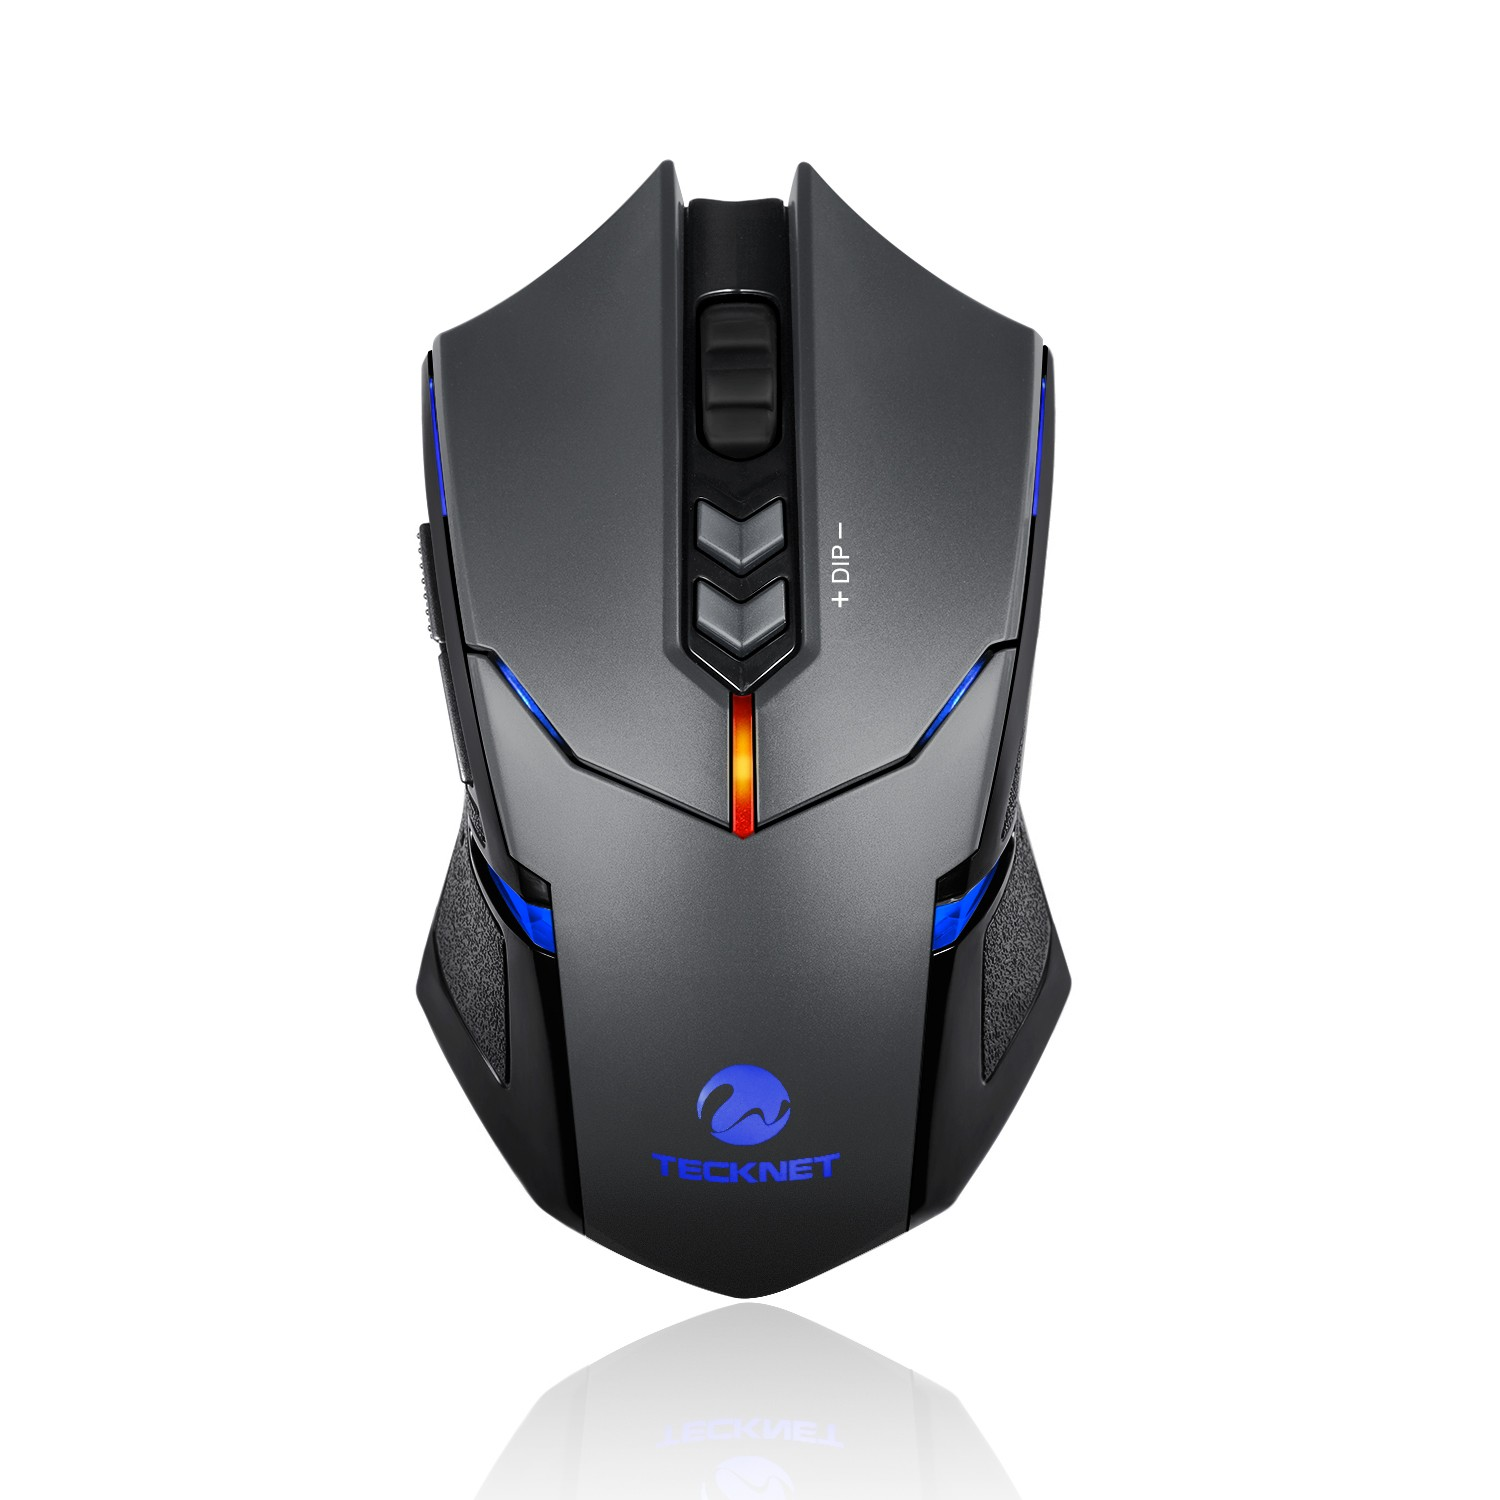 TeckNet Z4 VOLANT Wireless Gaming Mouse 2000 DPI - безжична гейминг мишка (за Mac и PC)